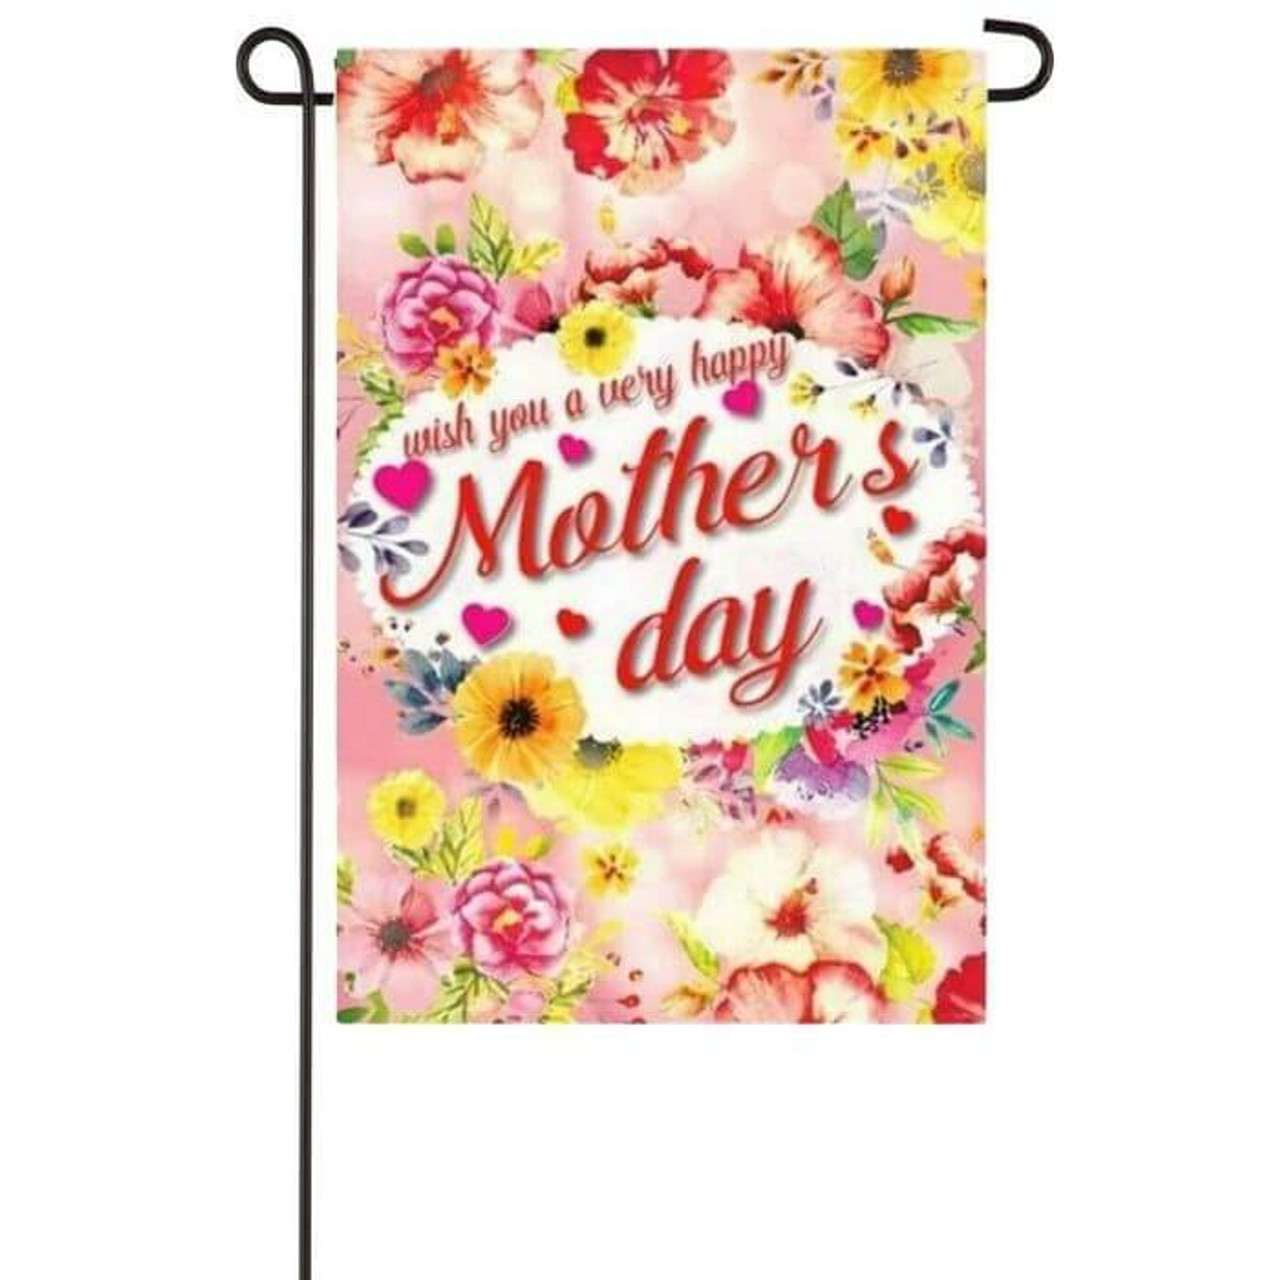 """This garden flag features a light pink background with assorted flowers throughout it. In the center is a white oval that reads """"Wish you a very happy Mother's day"""" in red text."""